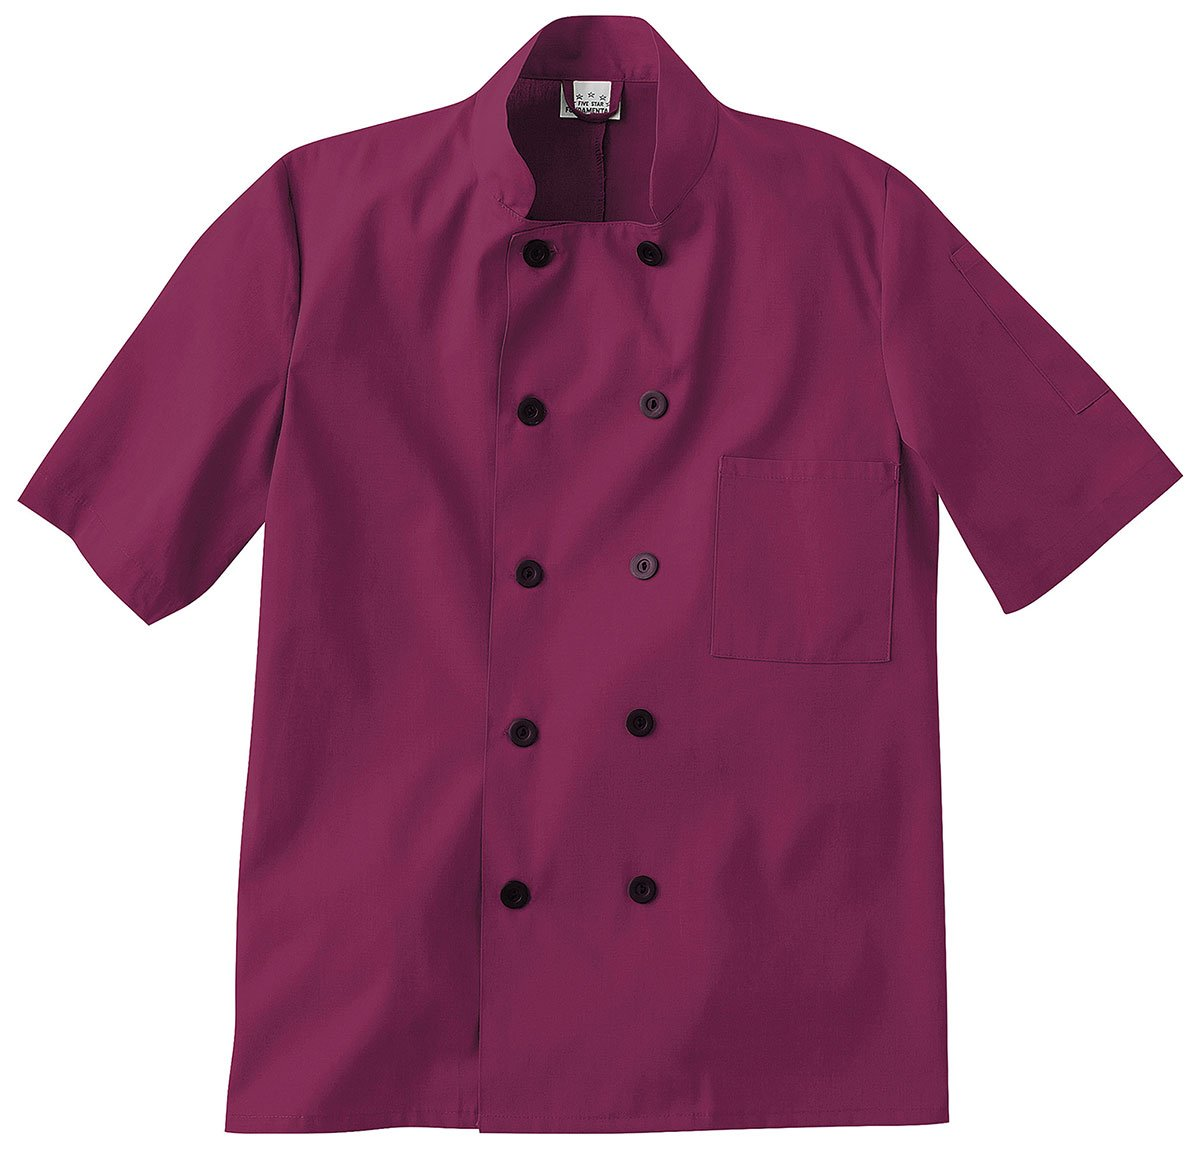 Five Star Chef Apparel Unisex Short Sleeve Coat (Wine, X-Small)